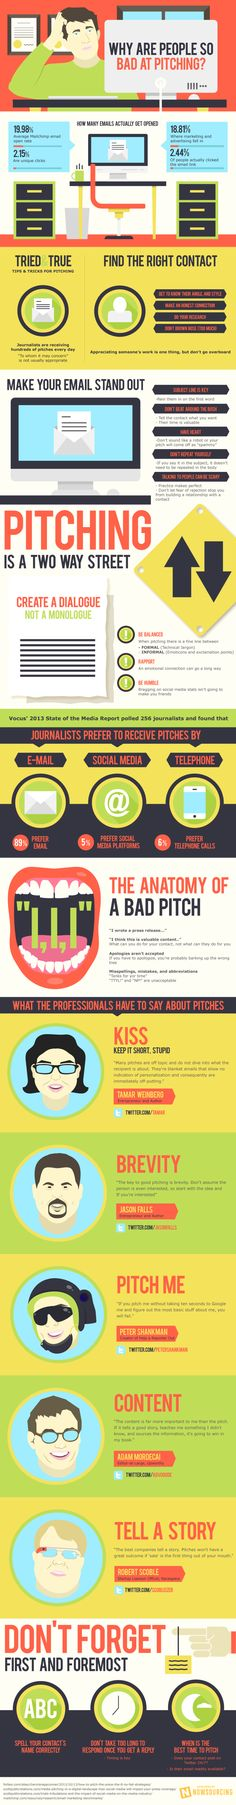 What Is The Difference Between A Good And Bad Public Relations Email Pitch To Journalists? #infographic